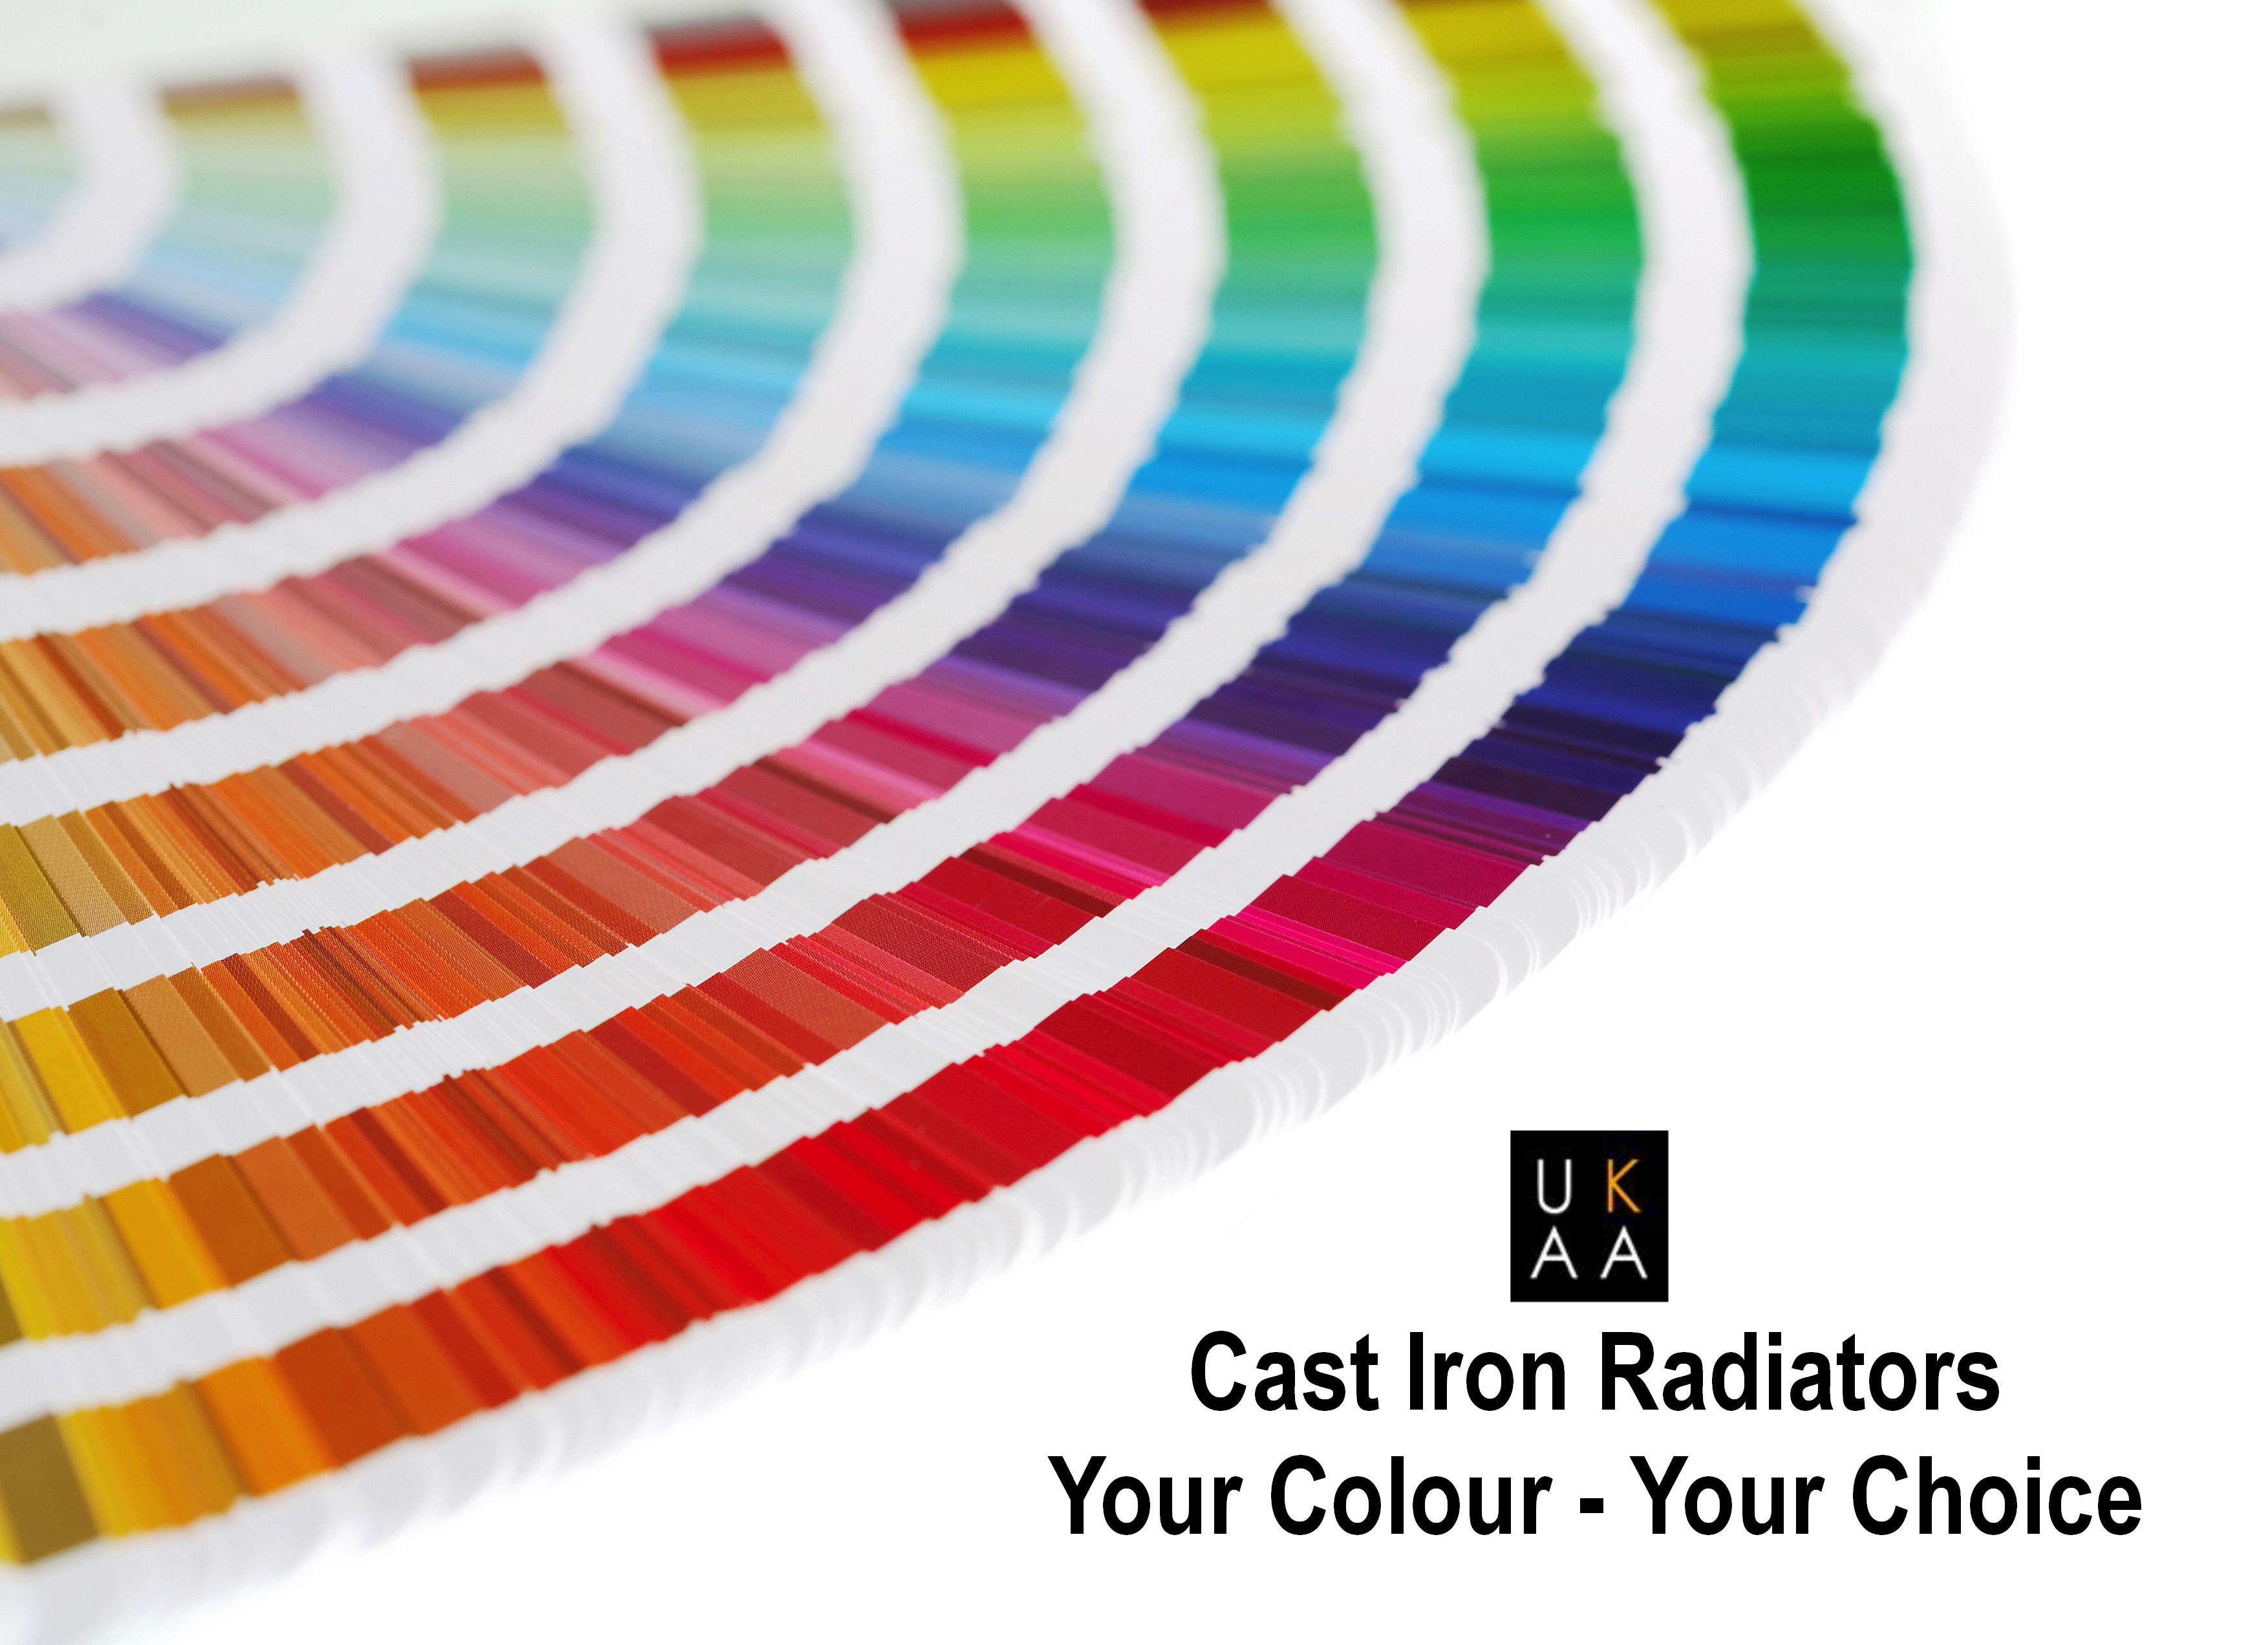 UKAA Cast Iron Radiators Colour Choice